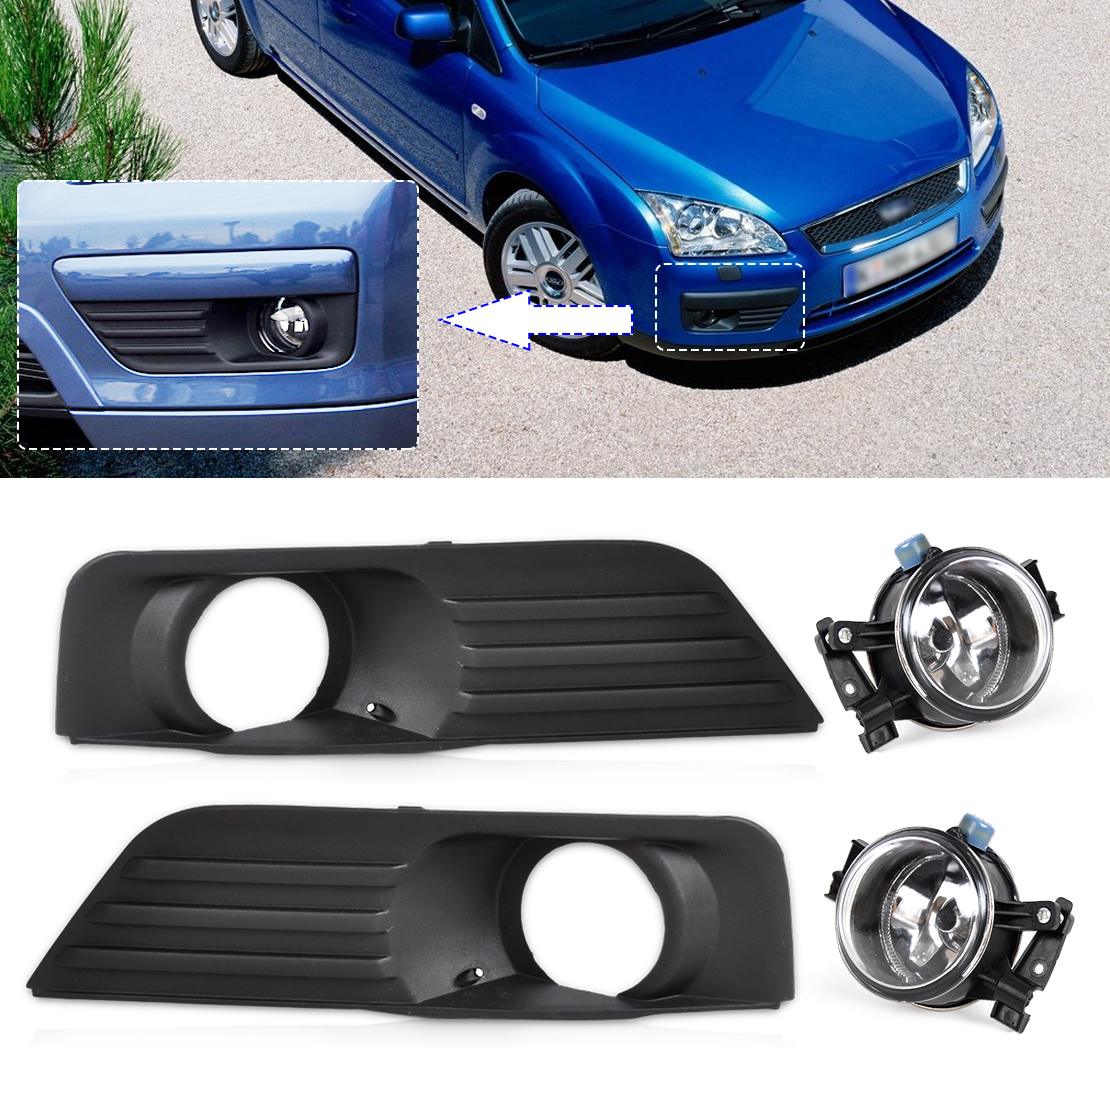 beler Front Lower Left Right Bumper Fog Light Grille Cover + Lamp Kit Set 4M51-19952-A 3M51-15K201-AA for Ford Focus 2005-2007 enchantimals пазл 60 магнитик пэттер и бри 03542